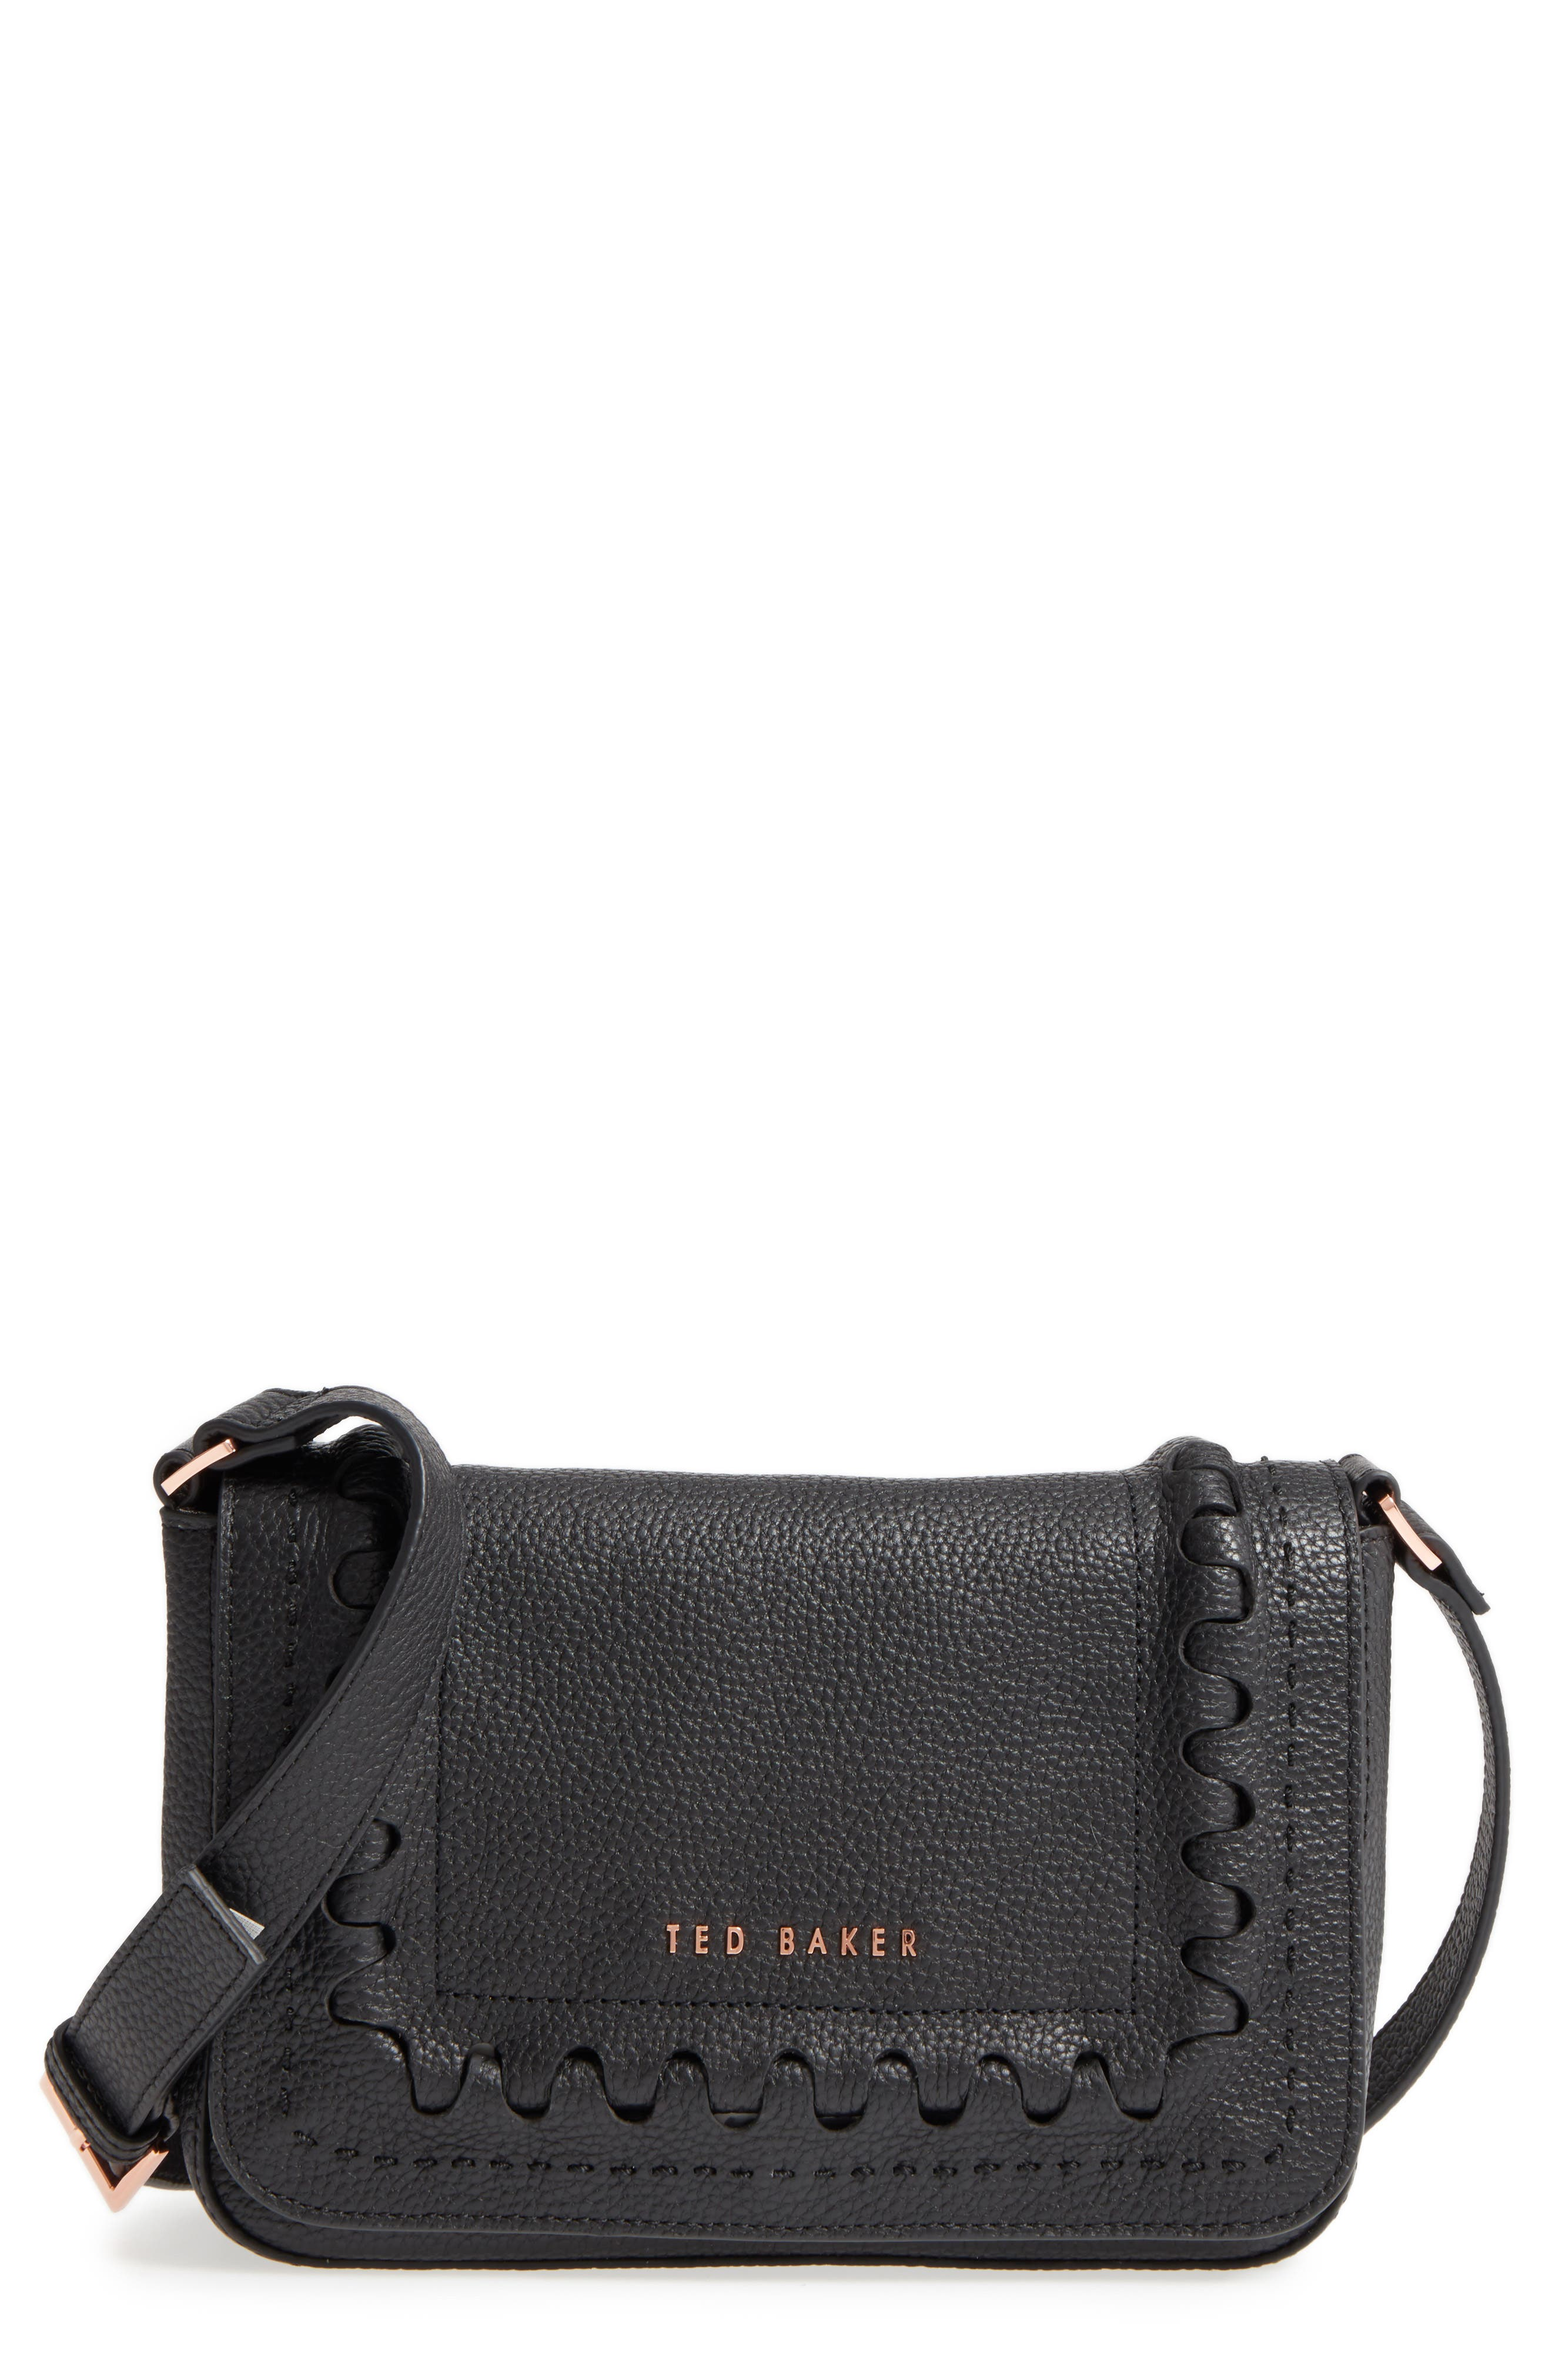 Tippi Leather Crossbody Bag,                         Main,                         color, 001